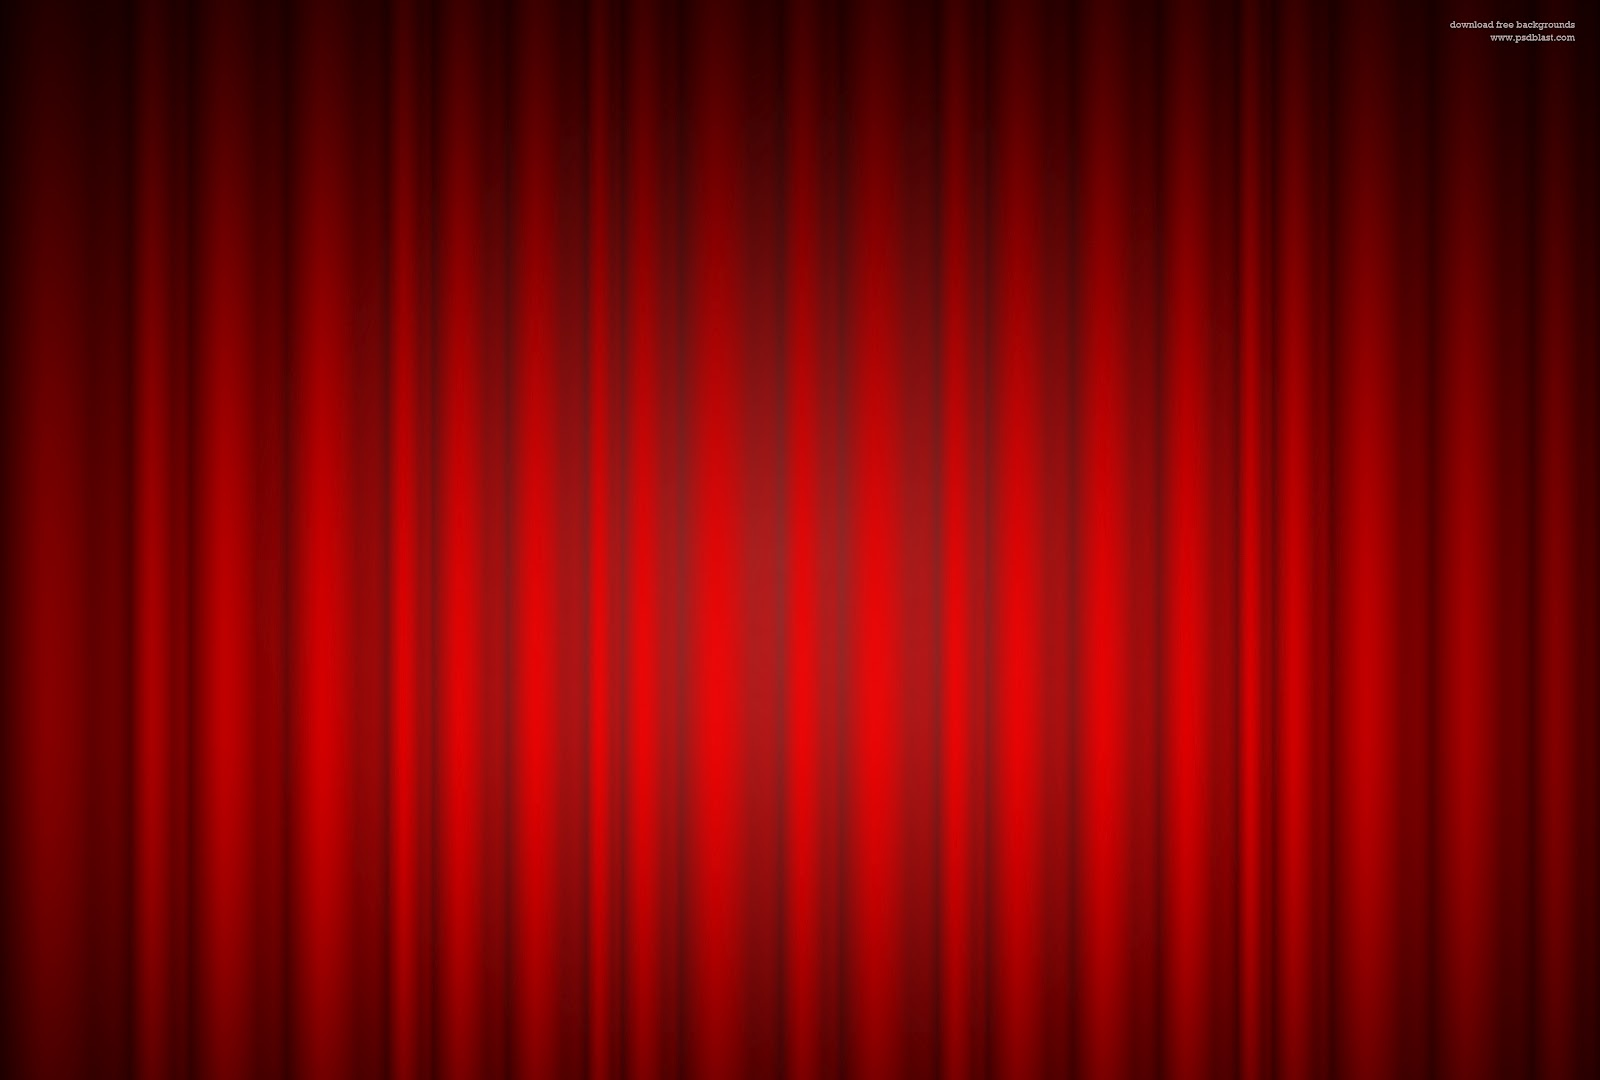 Http Freepsdstore Blogspot Com 2012 03 Red Curtain Background Html